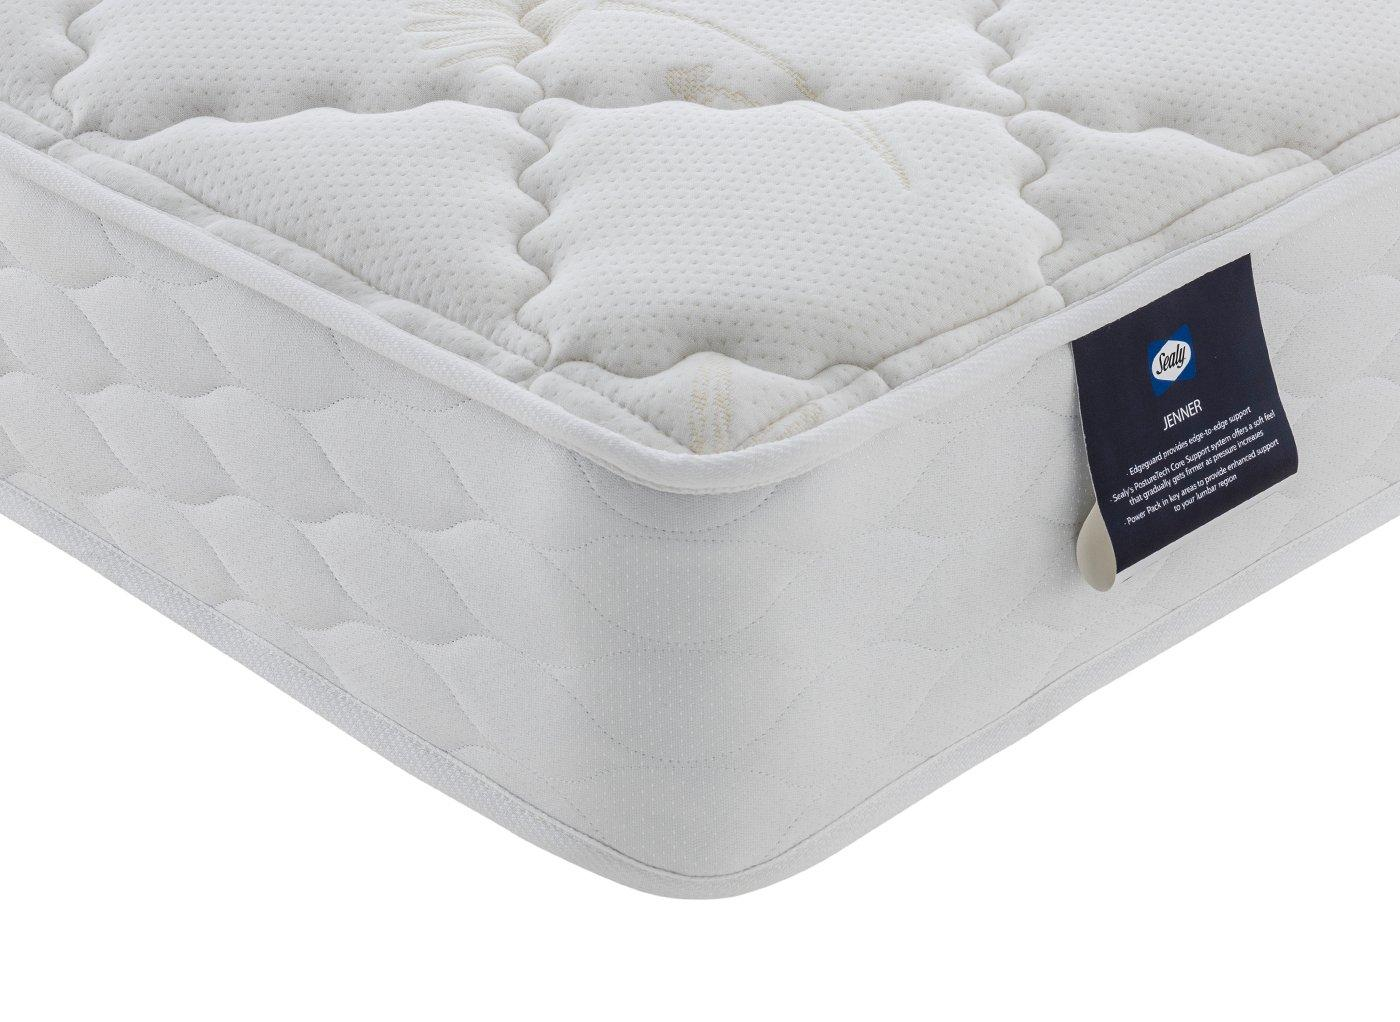 sealy-jenner-traditional-spring-mattress